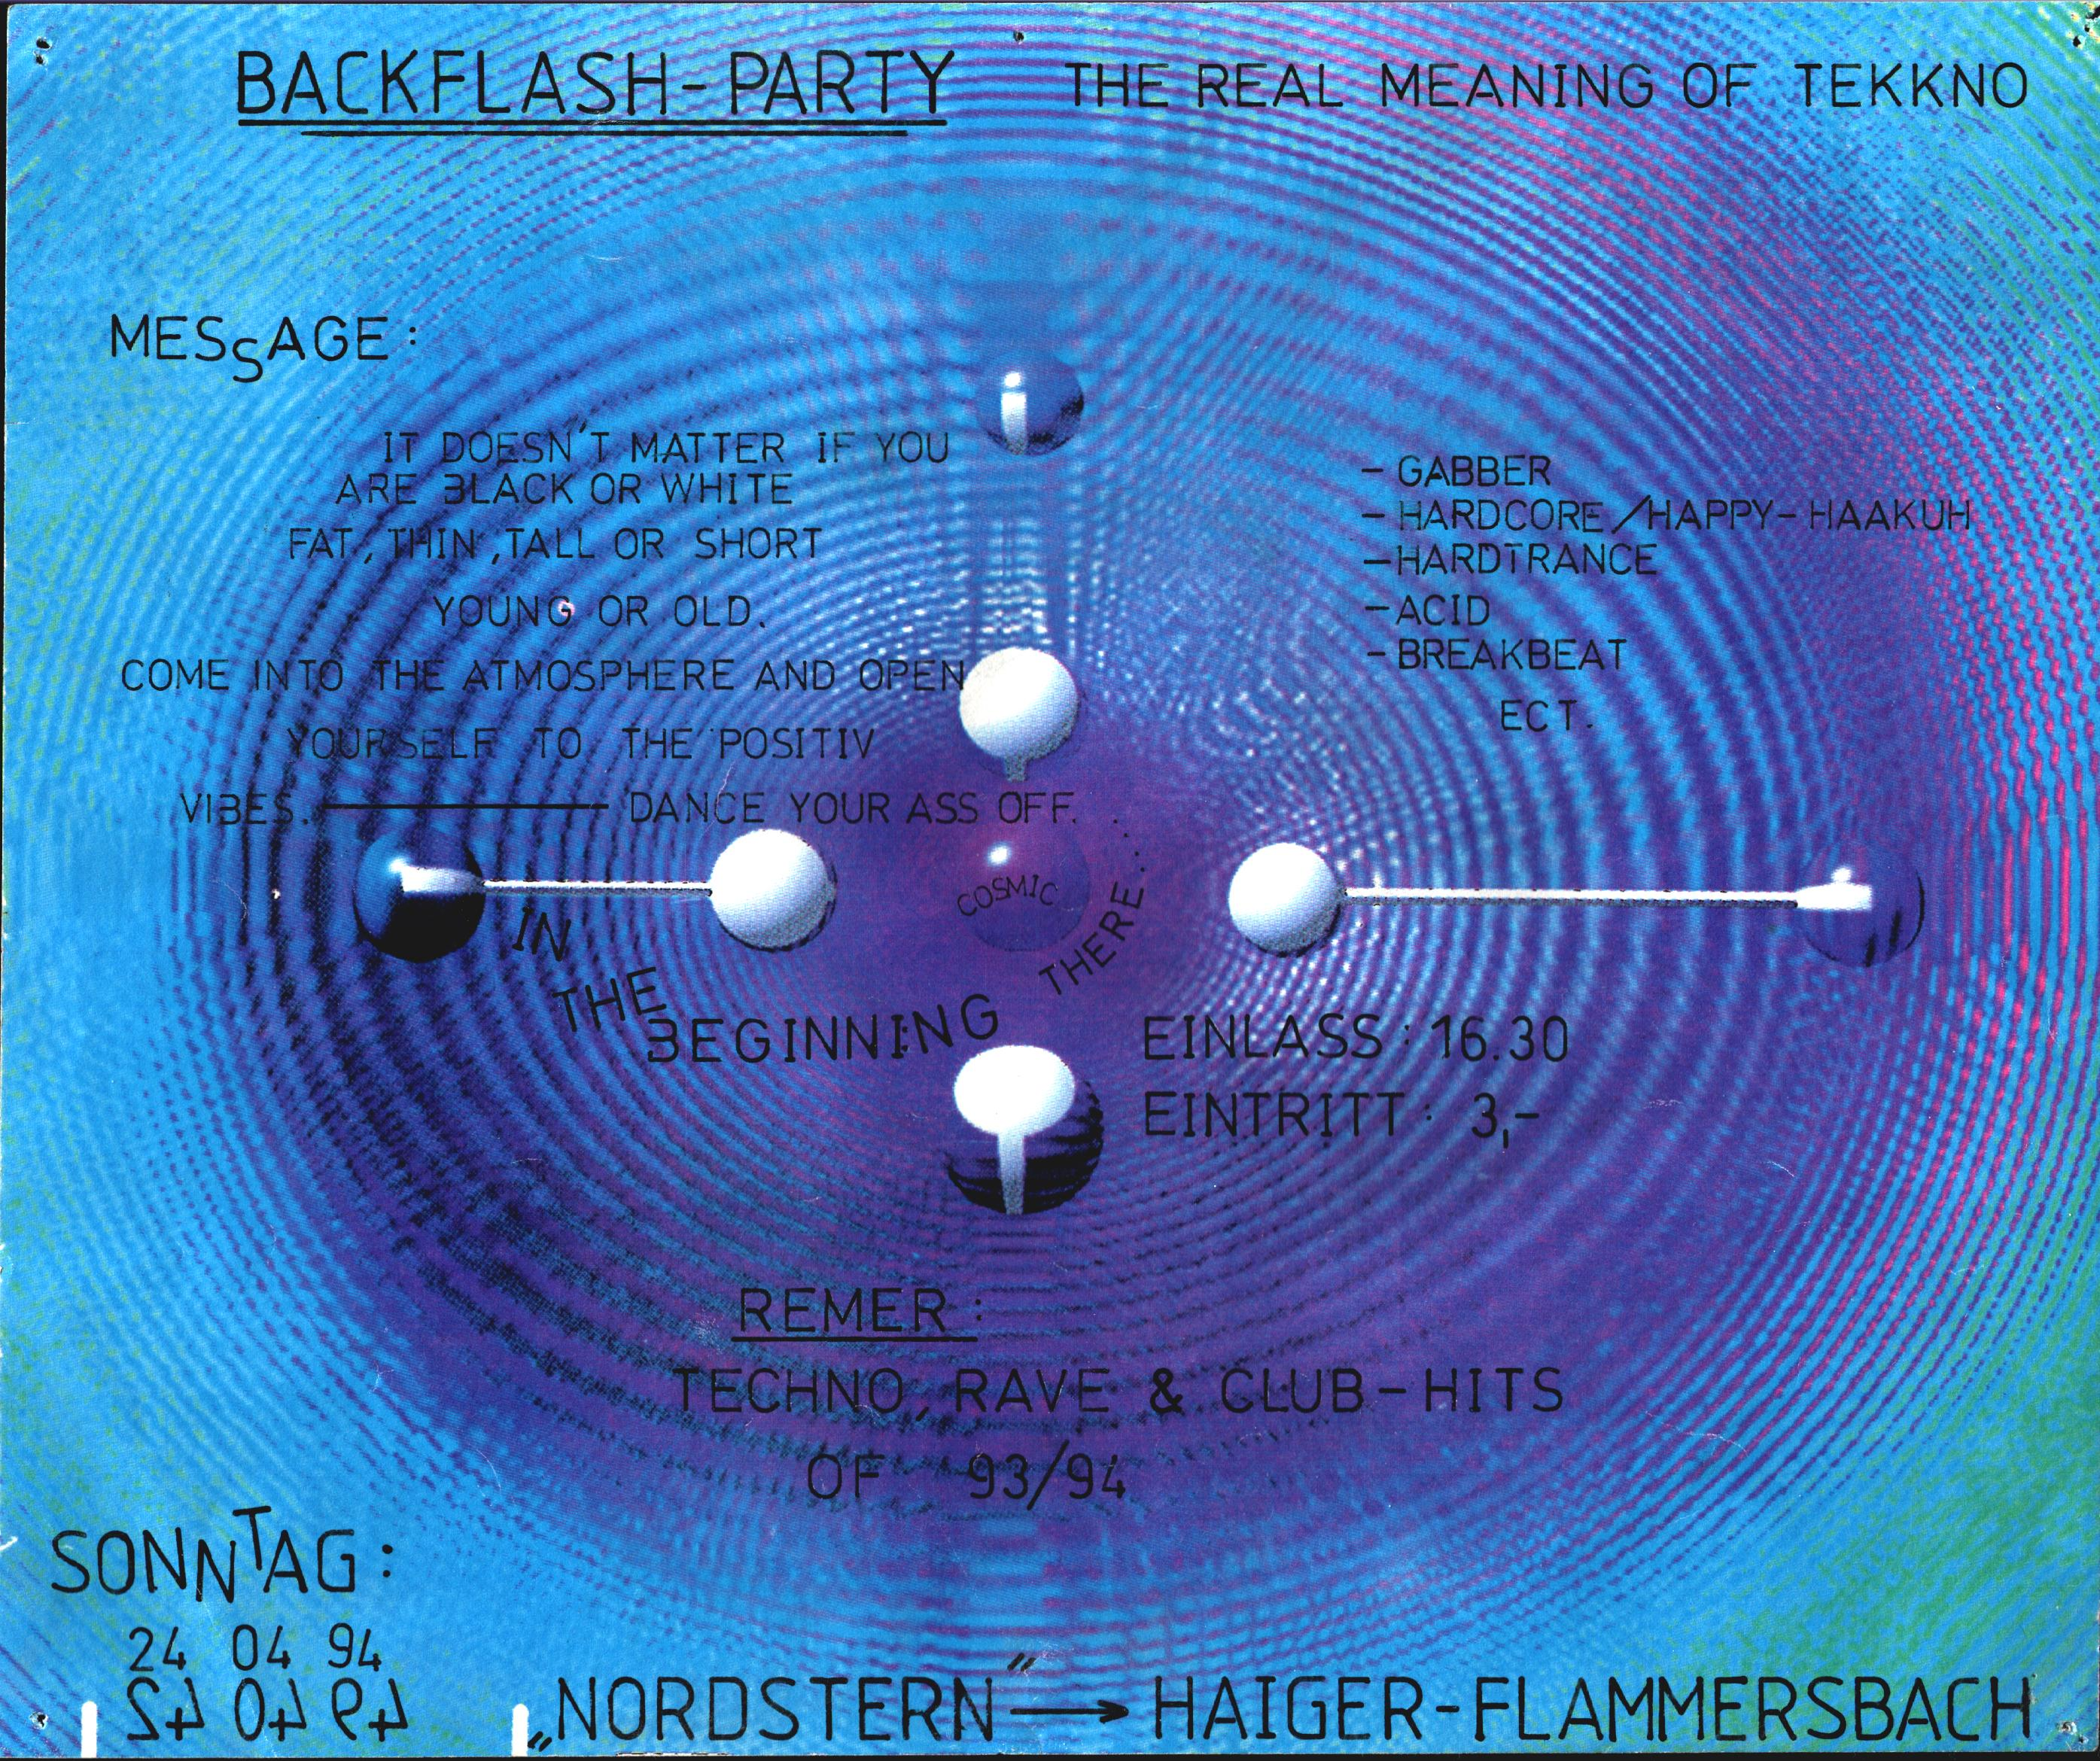 Flyer Backflash Party, 24.04.1994 (6 Tage vor der Mayday Rave-Olympia)